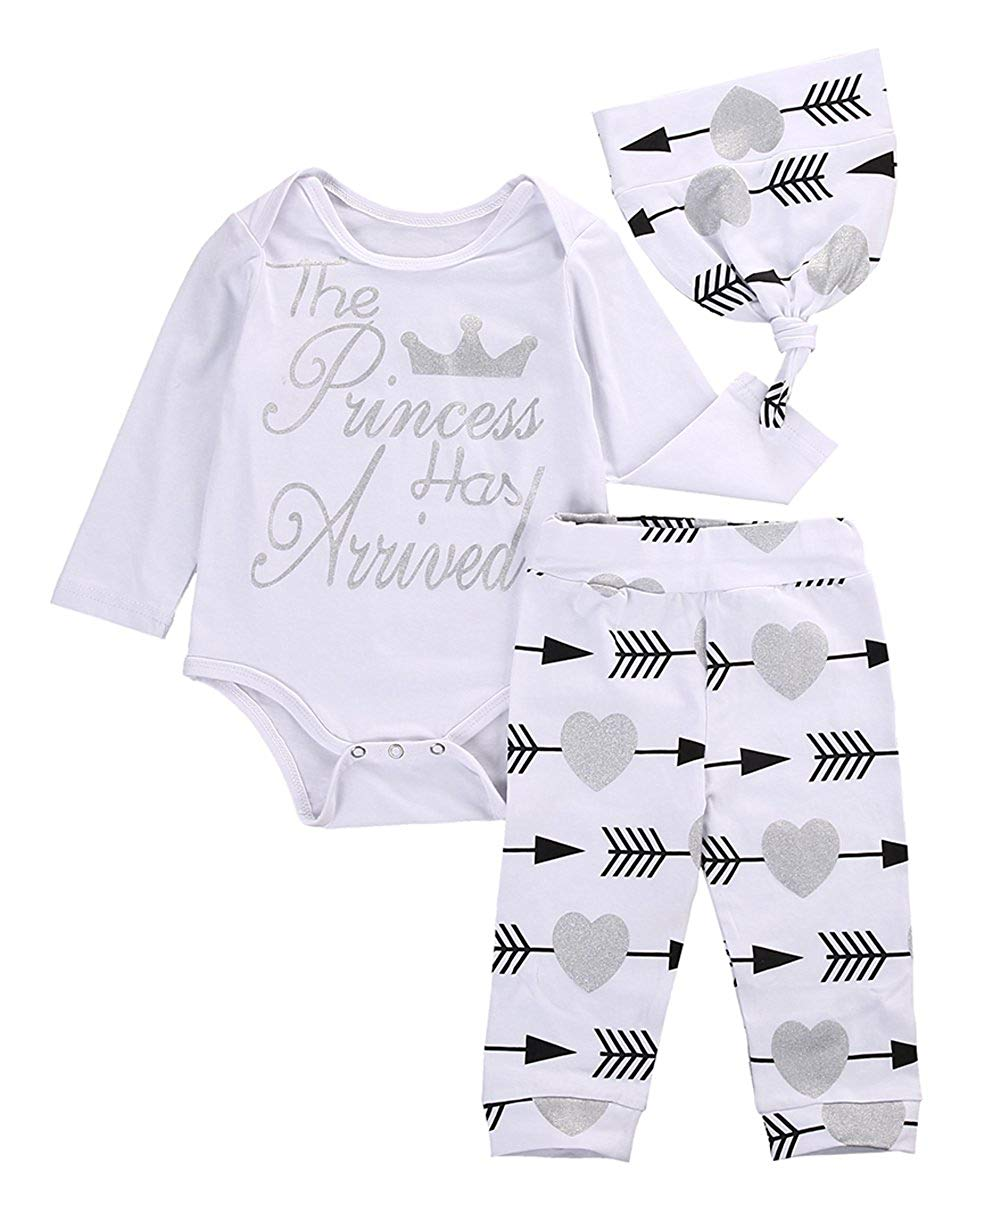 766af36c90d Get Quotations · Newborn Baby Girls Cute Bodysuits with Leggings Cap 3pcs  Outfit Clothes